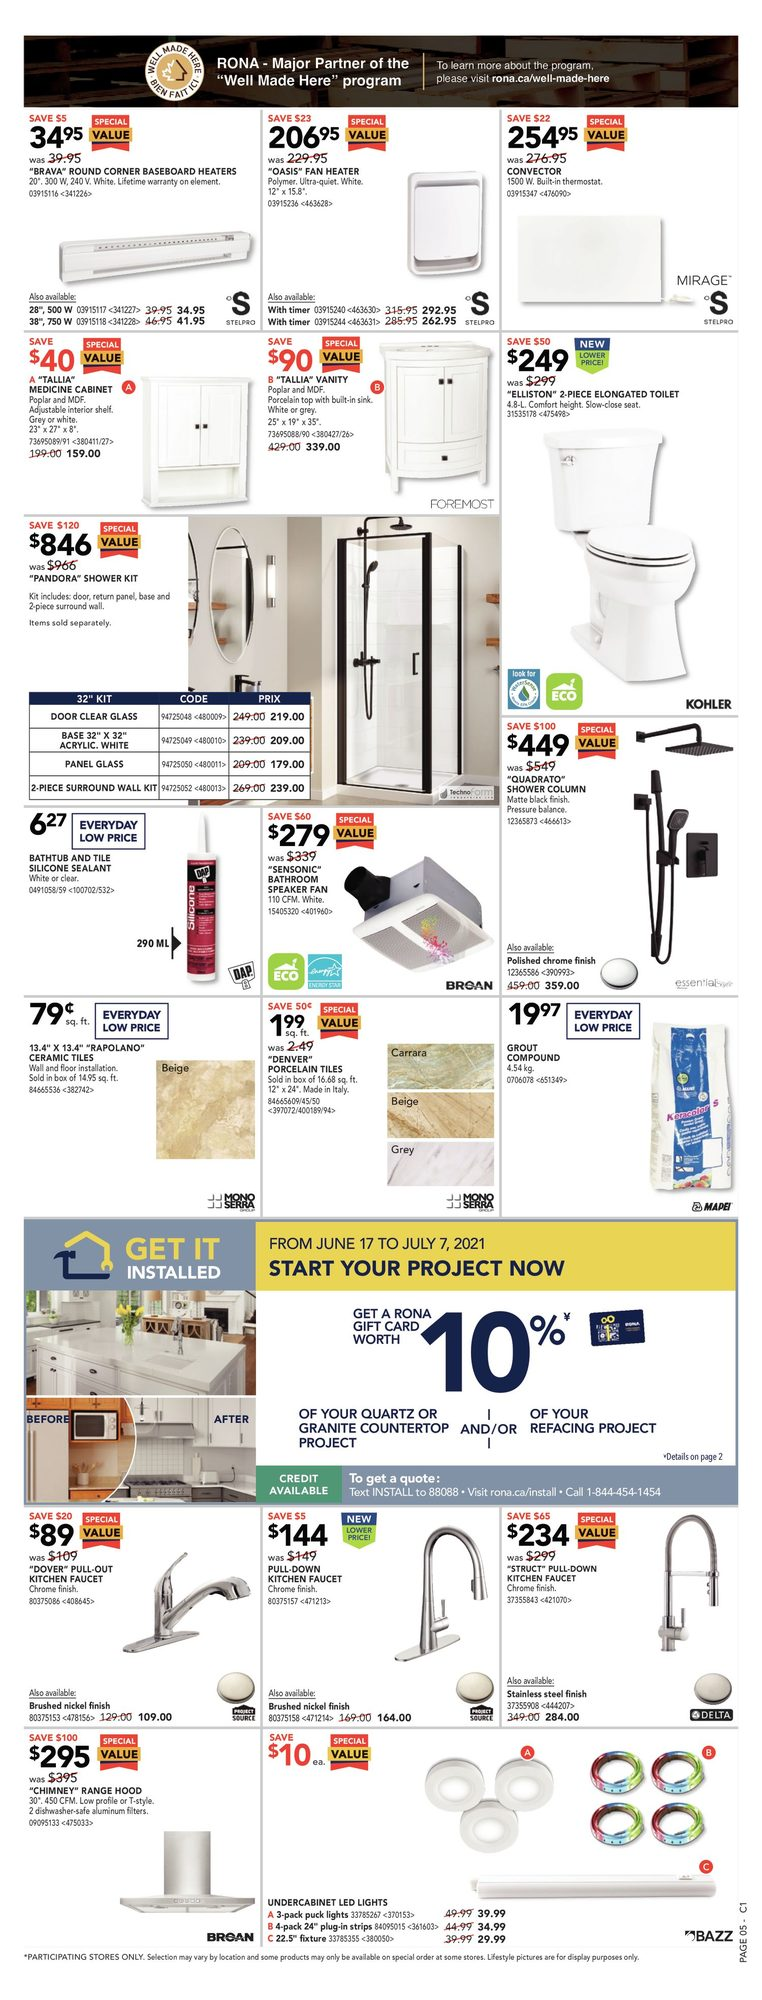 Rona - Weekly Flyer Specials - Father's Day Event - Page 9